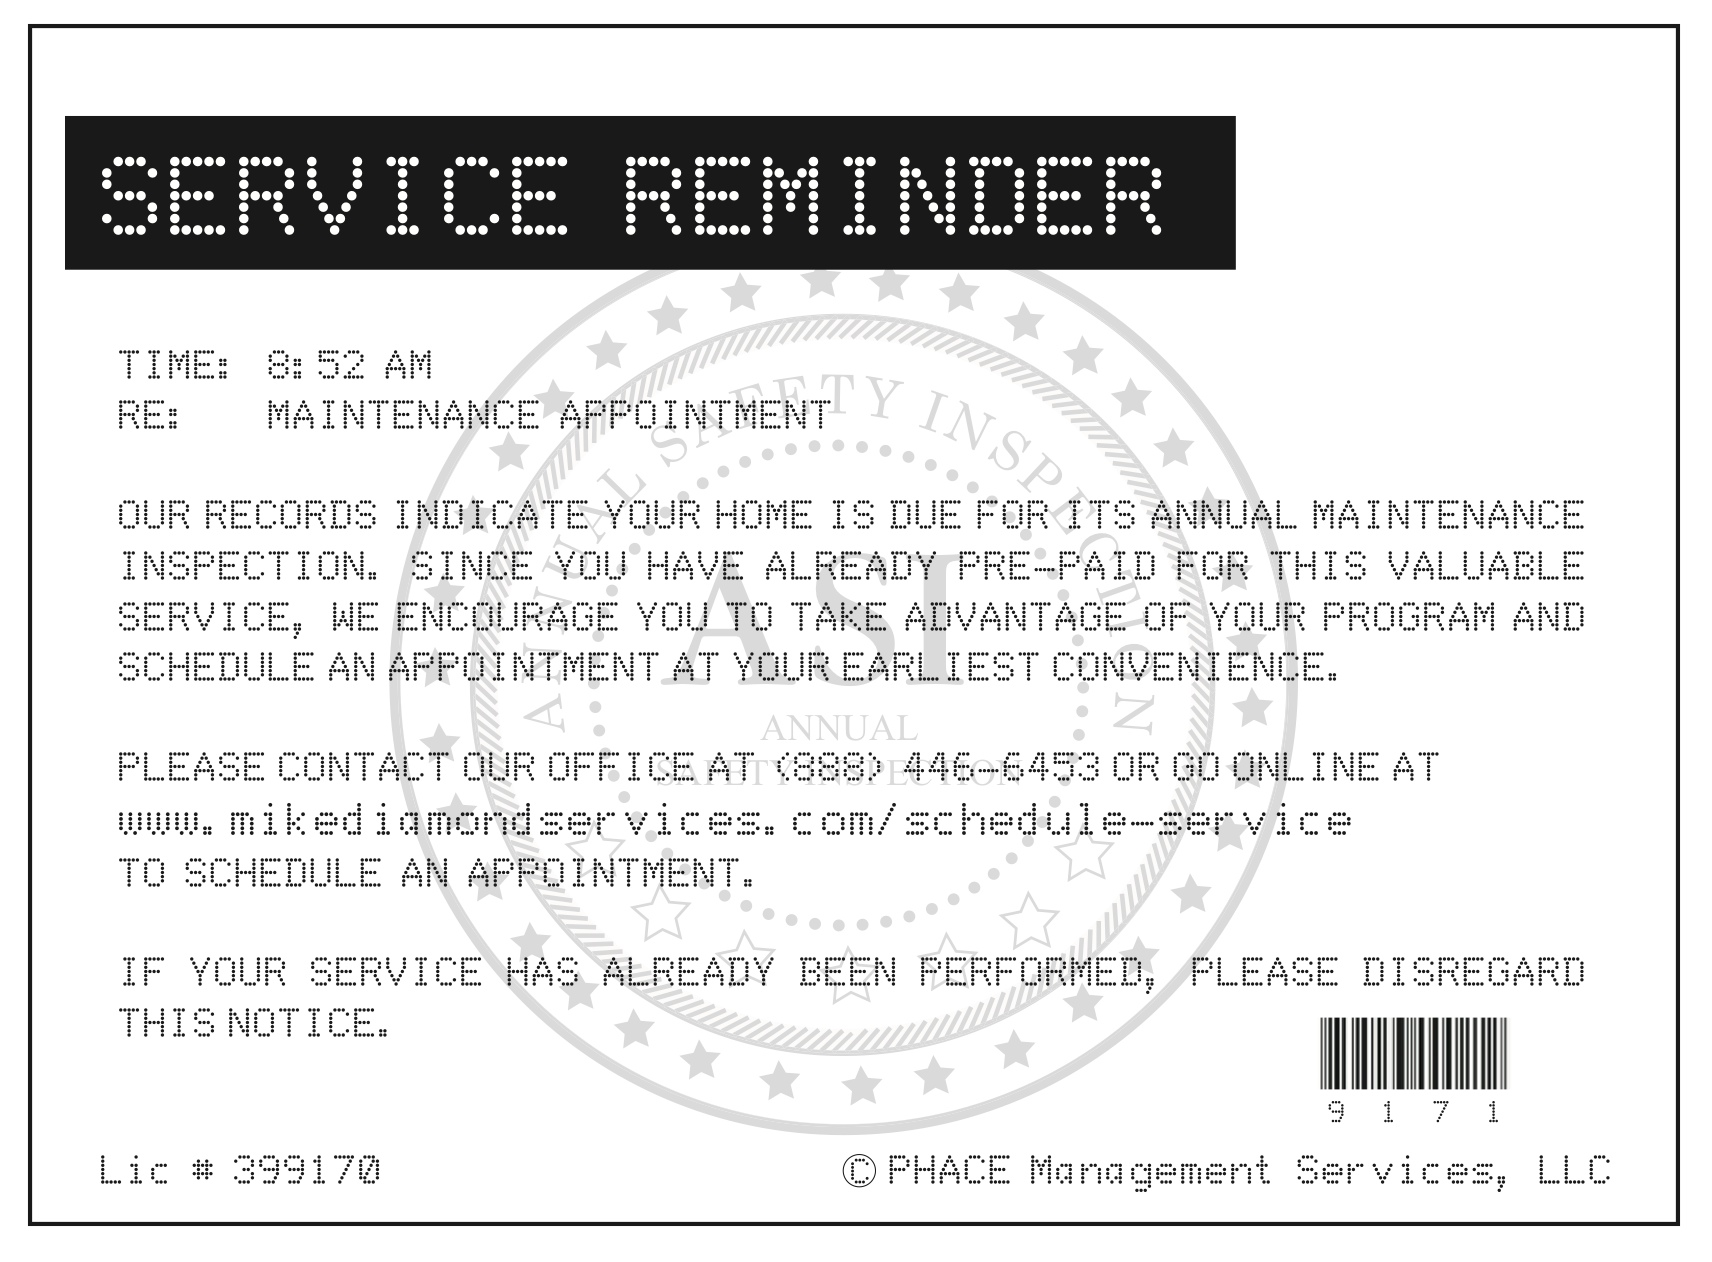 md service reminder warranty card 2 mike diamond services. Black Bedroom Furniture Sets. Home Design Ideas